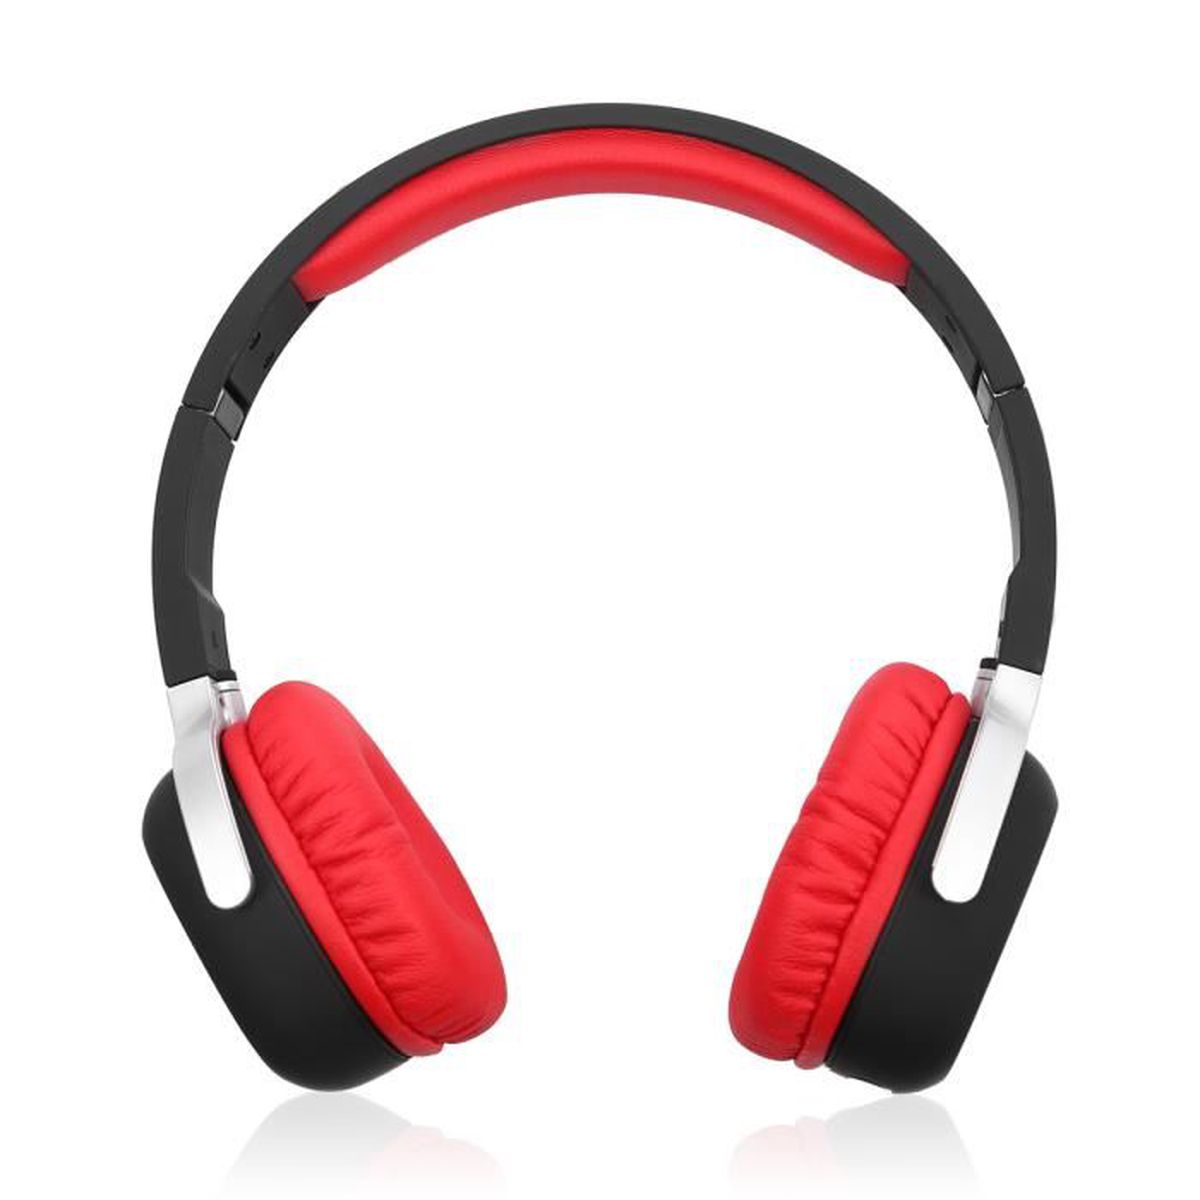 newbee nb 9 casque audio rouge sans fil r glable podom tre sports app headphone bluetooth v4 1. Black Bedroom Furniture Sets. Home Design Ideas